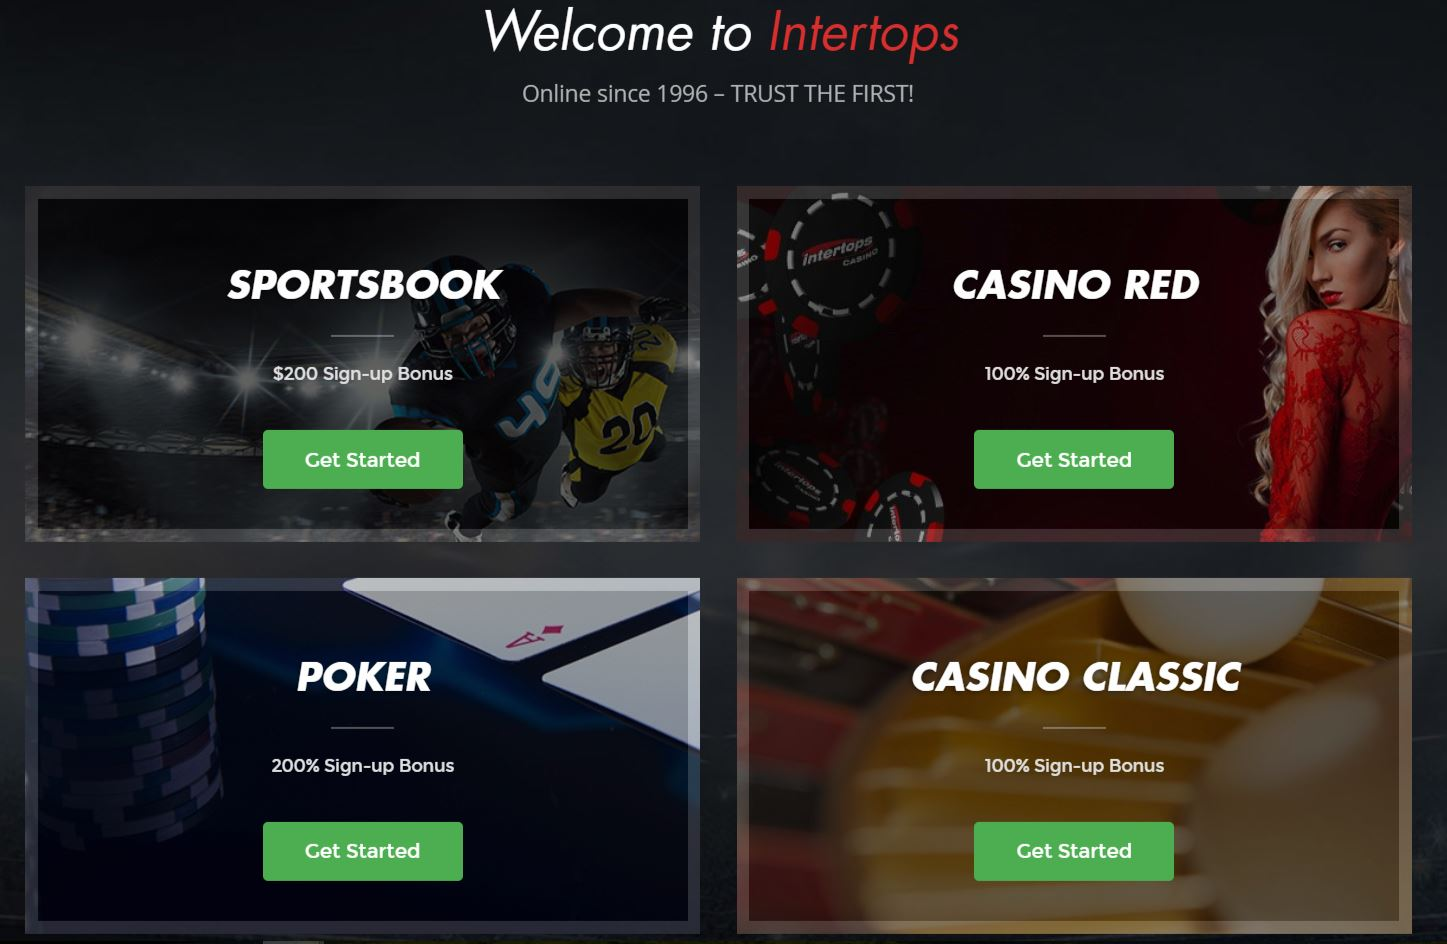 intertops home page